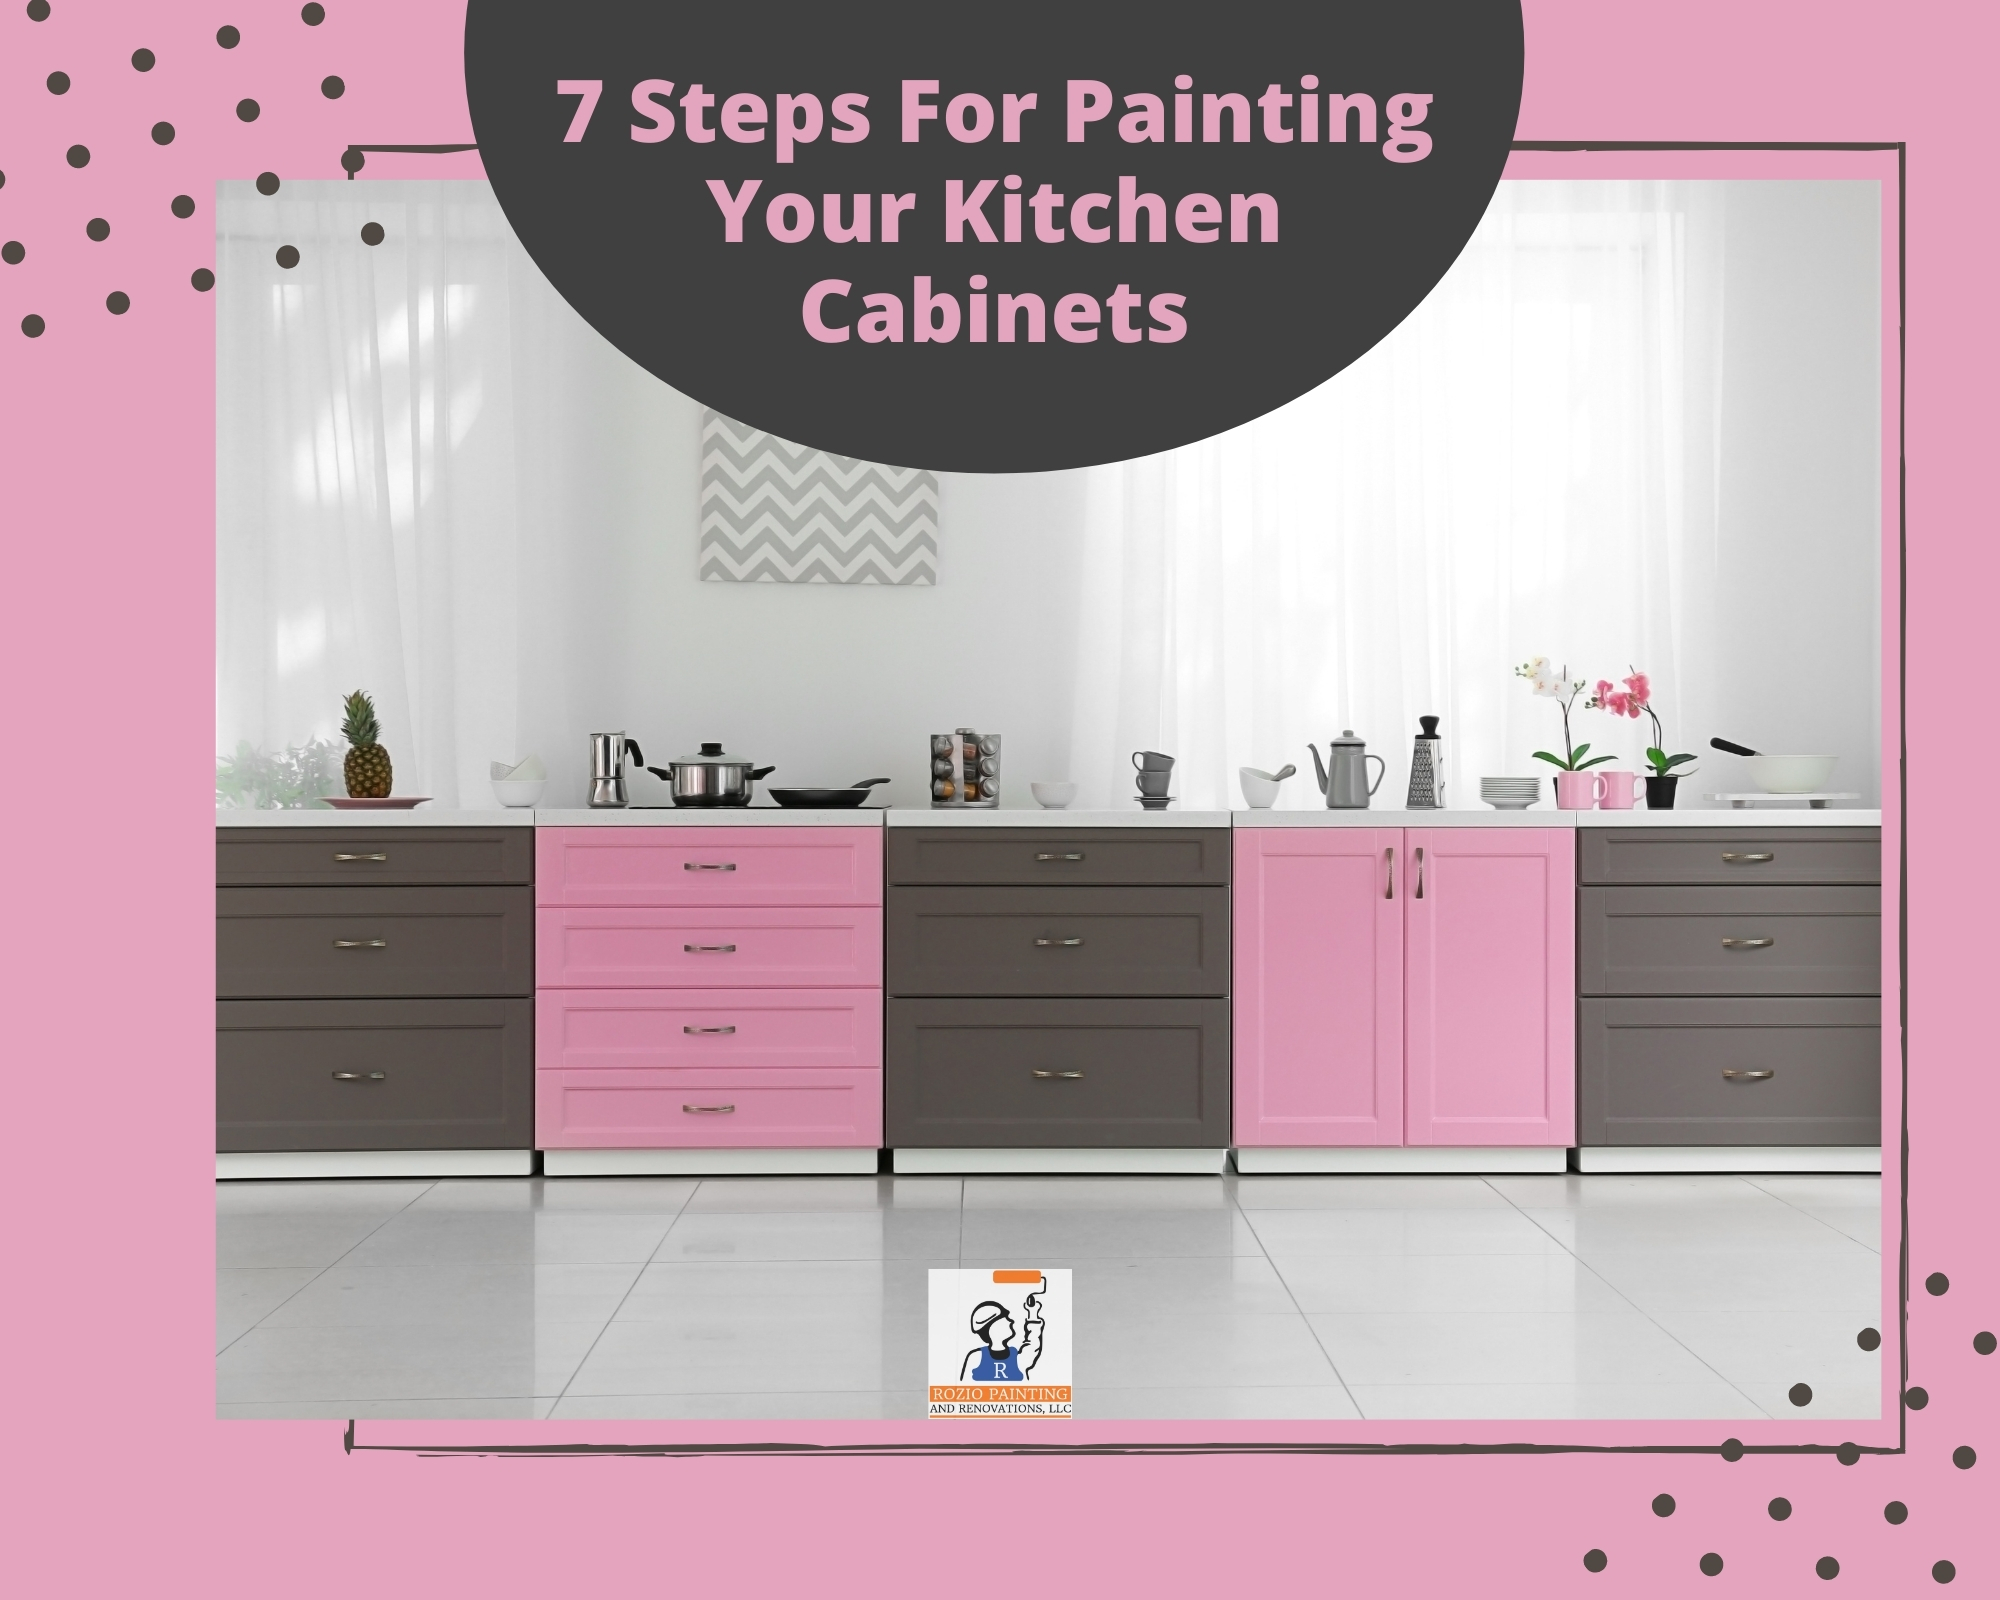 7 Steps for Painting Your Kitchen Cabinets